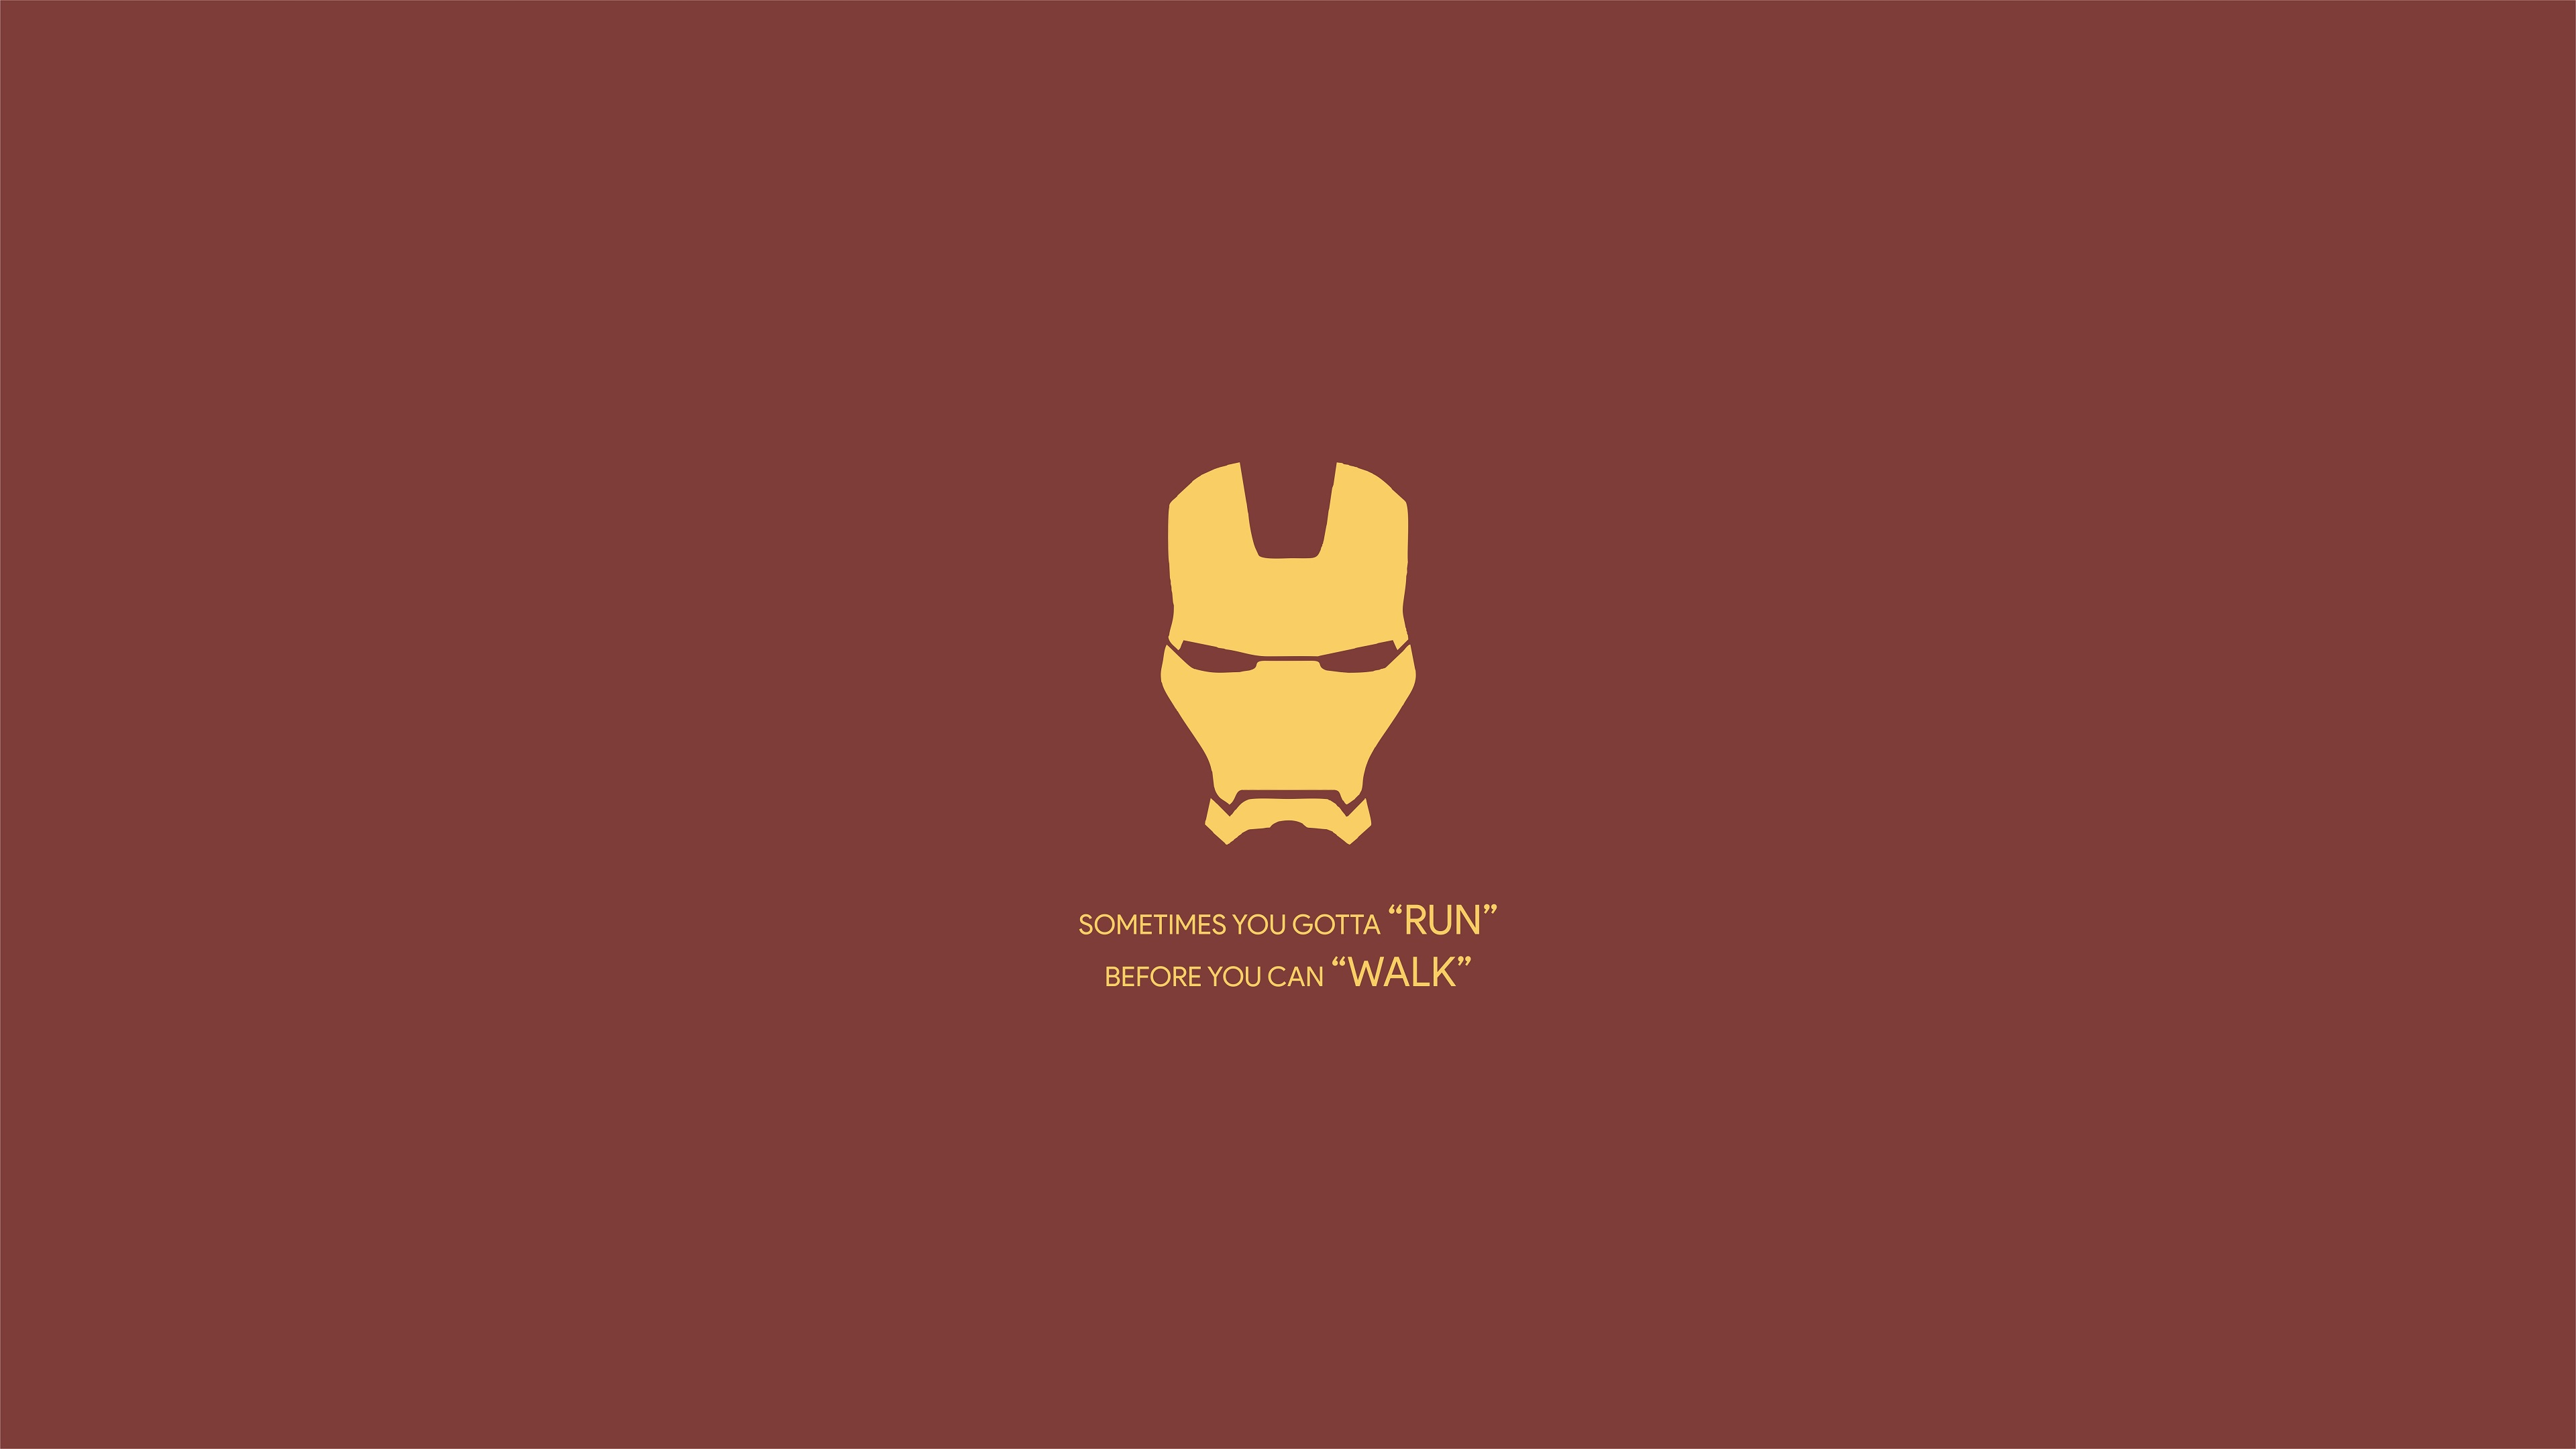 Iron Man Minimalist 4k Ultra Hd Wallpaper Background Image